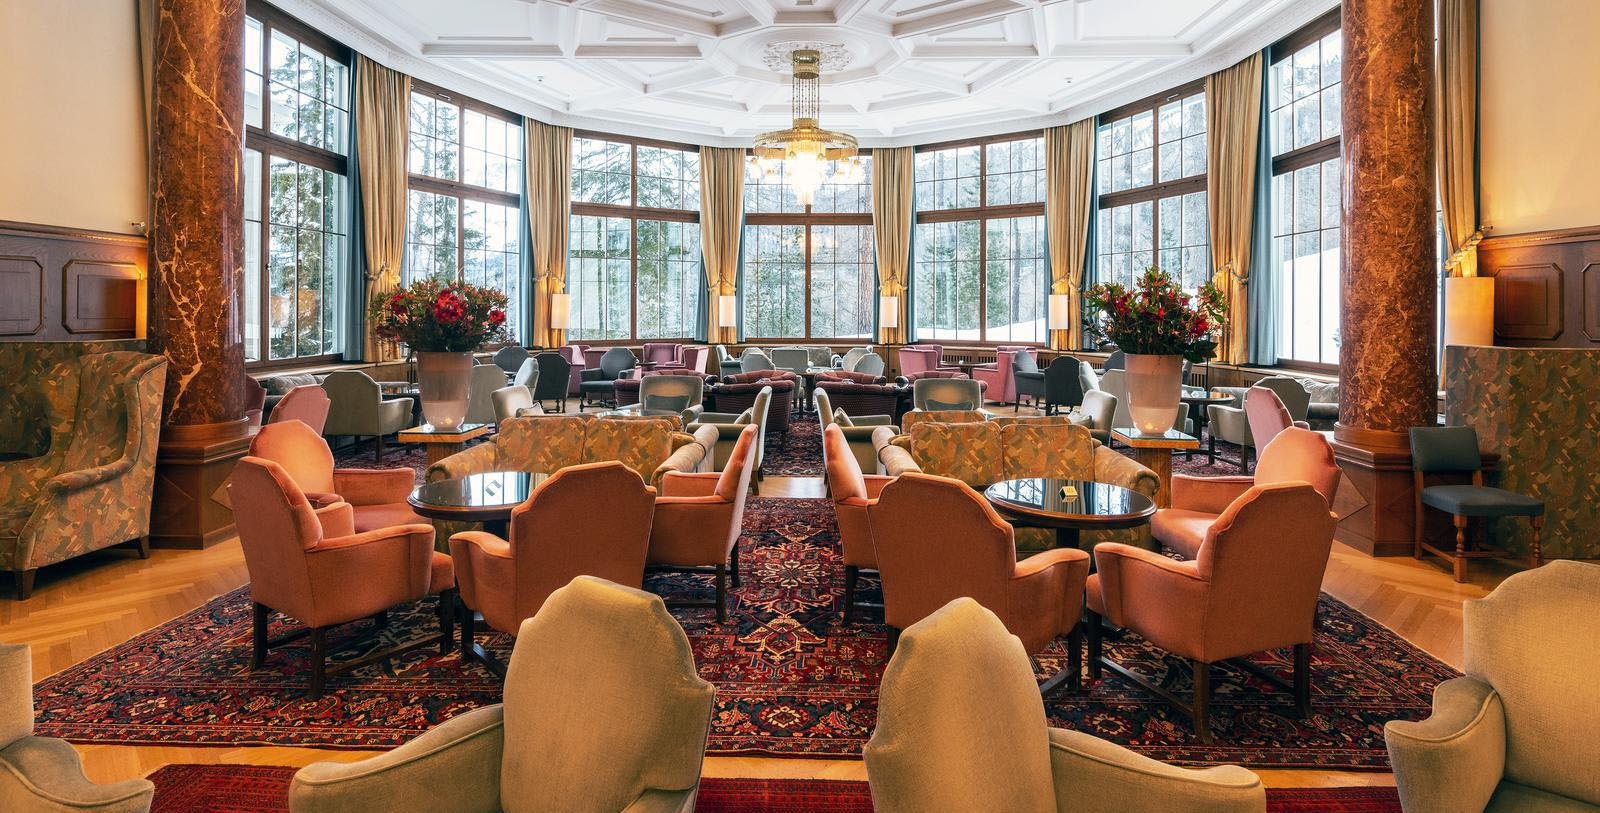 Image of Seating Area Hotel Waldhaus Sils, 1908, Member of Historic Hotels Worldwide, in Sils Maria, Switzerland, Taste